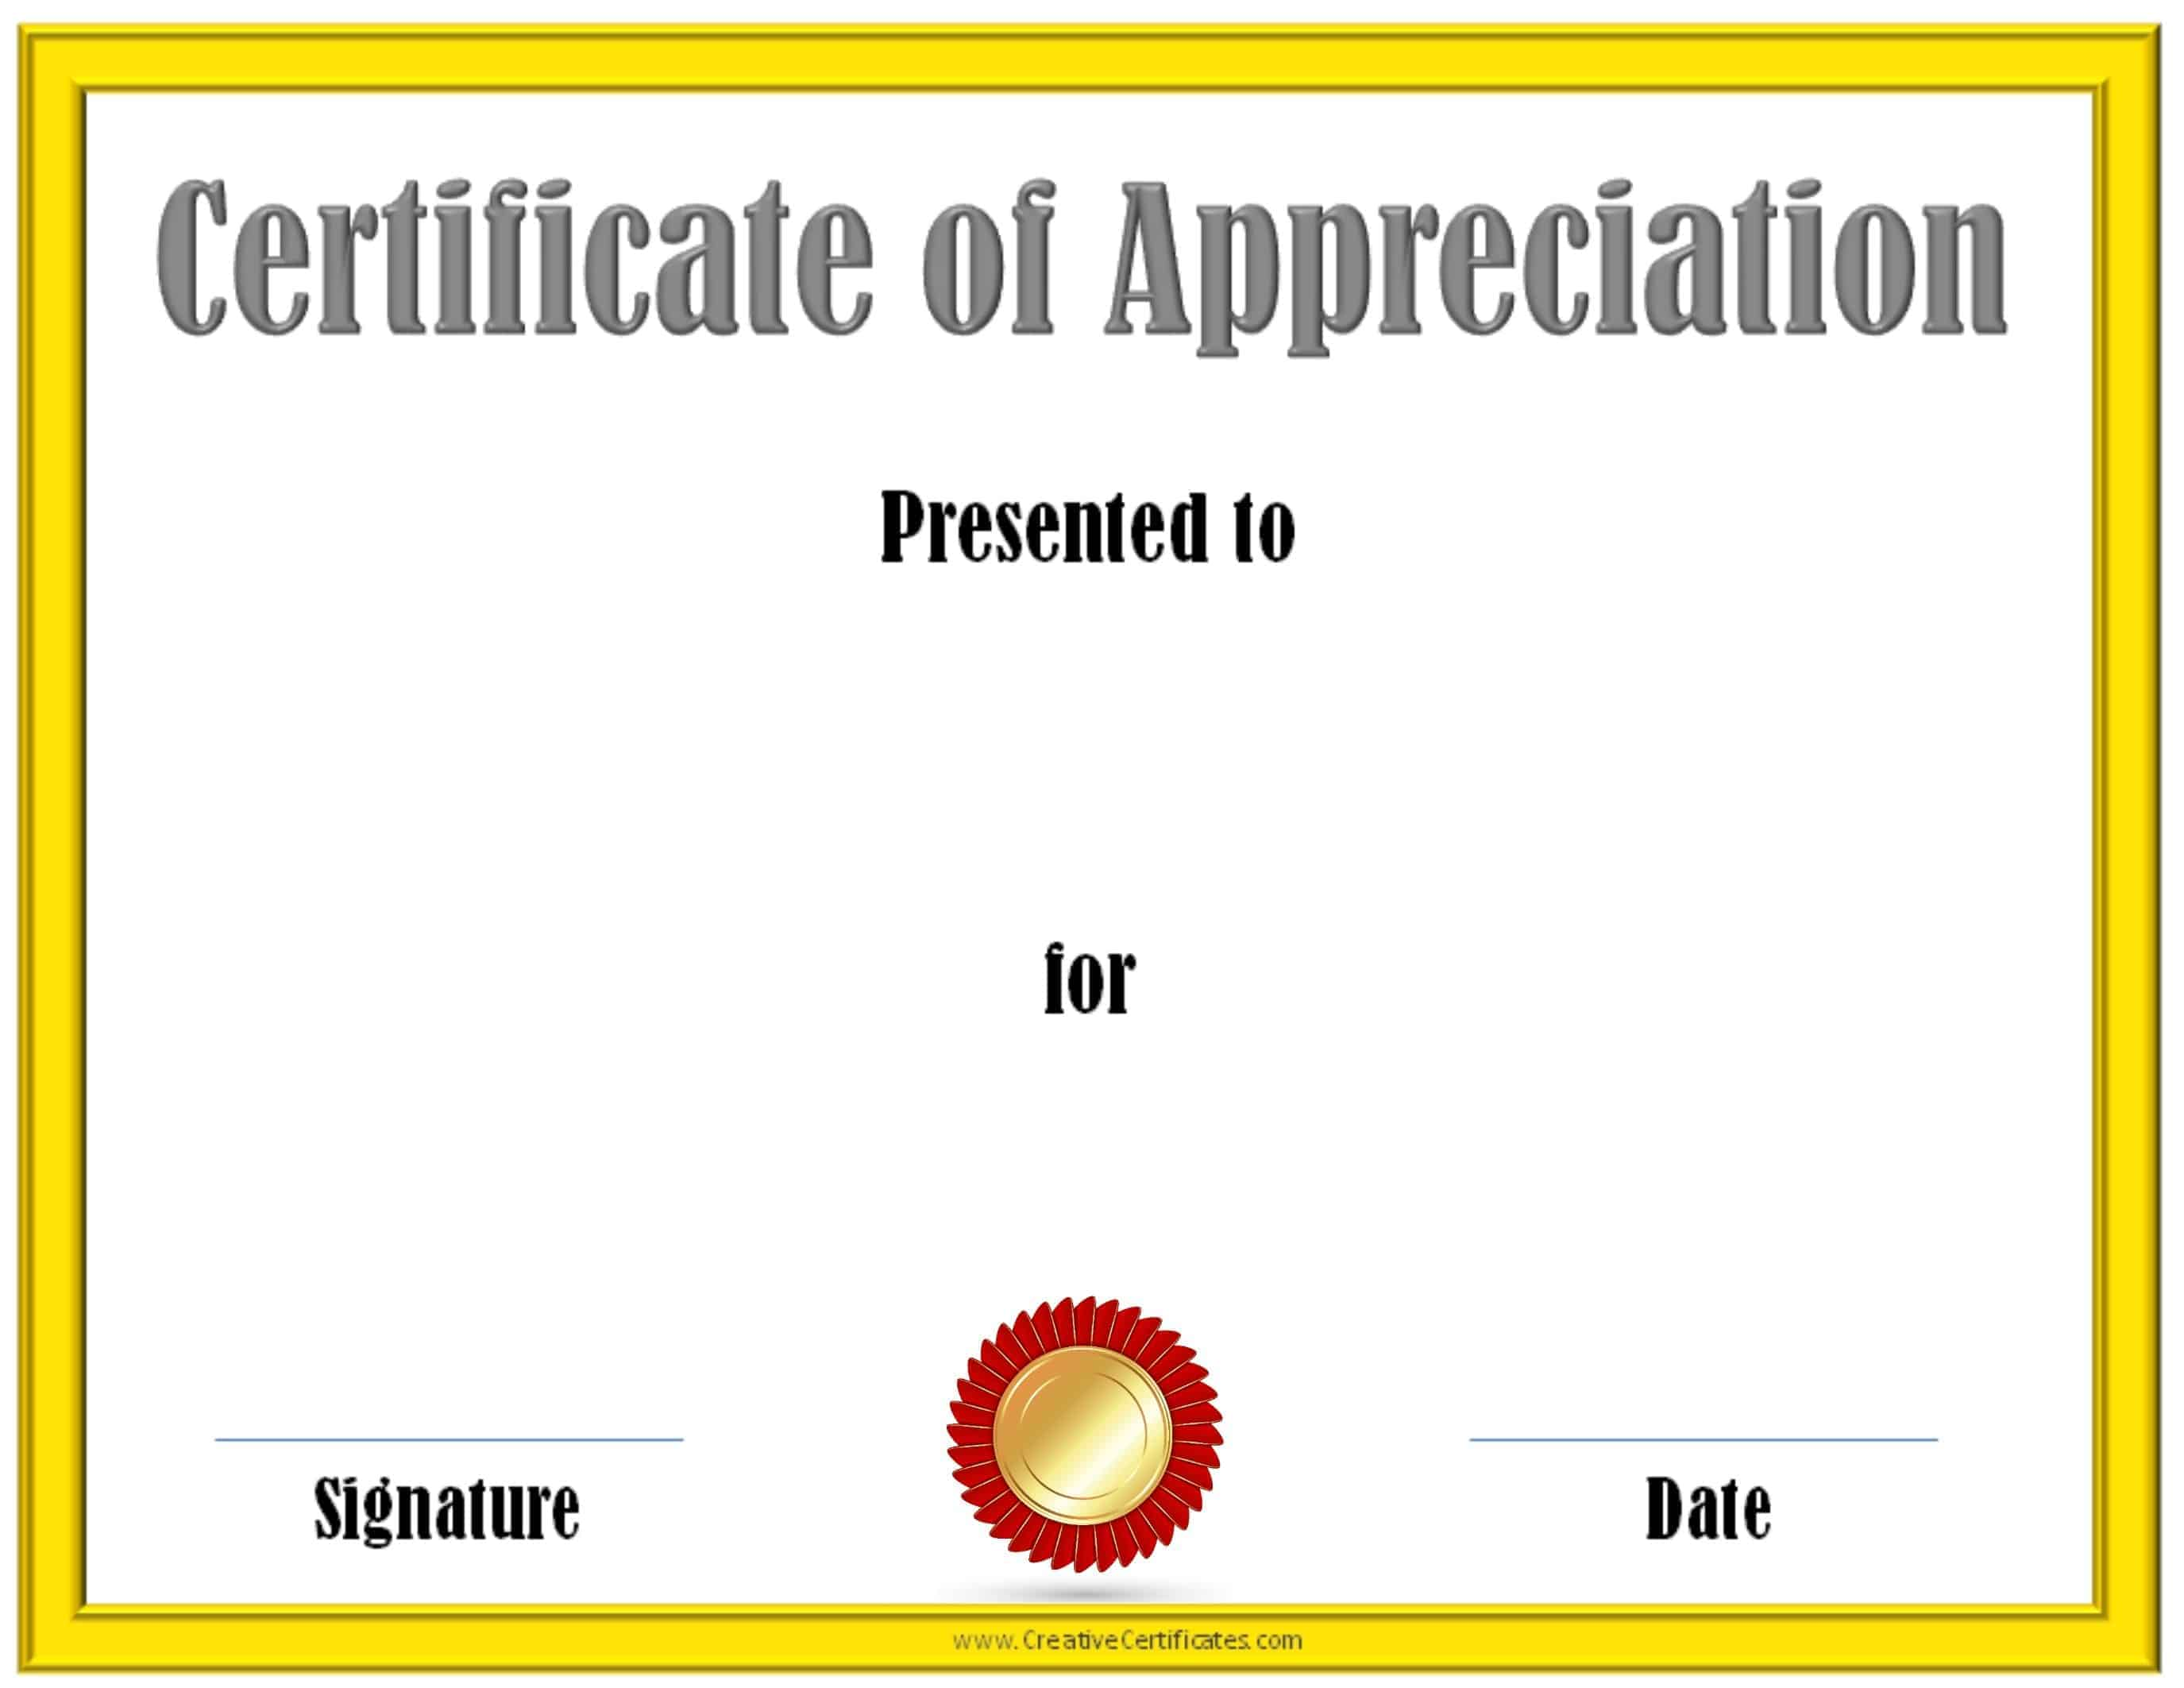 Yellow border with a red and gold award ribbon